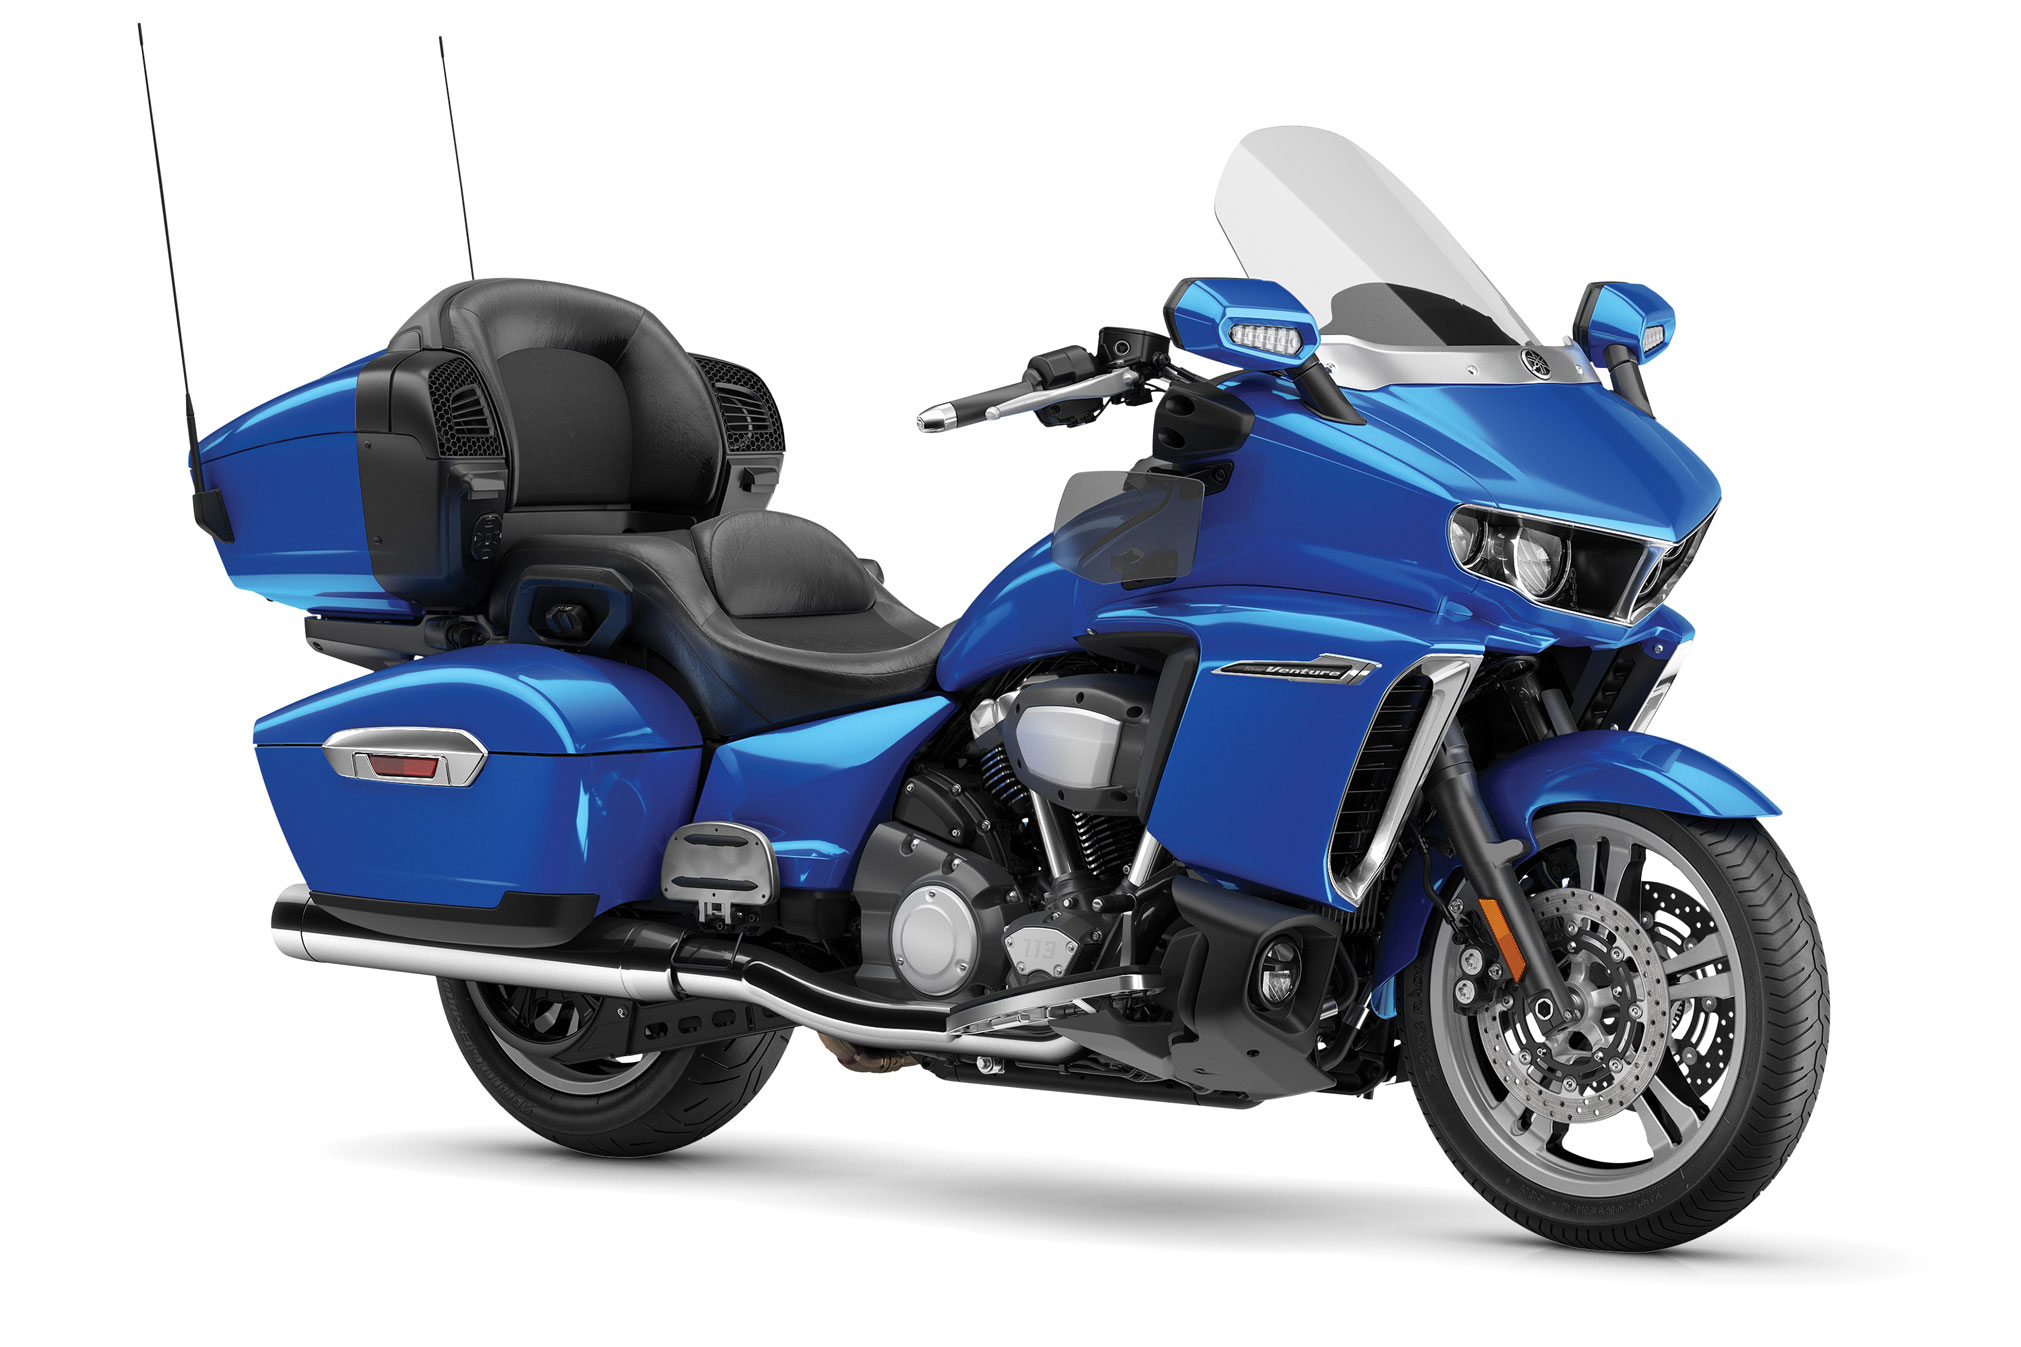 2021 Yamaha Star Venture Front and Side View